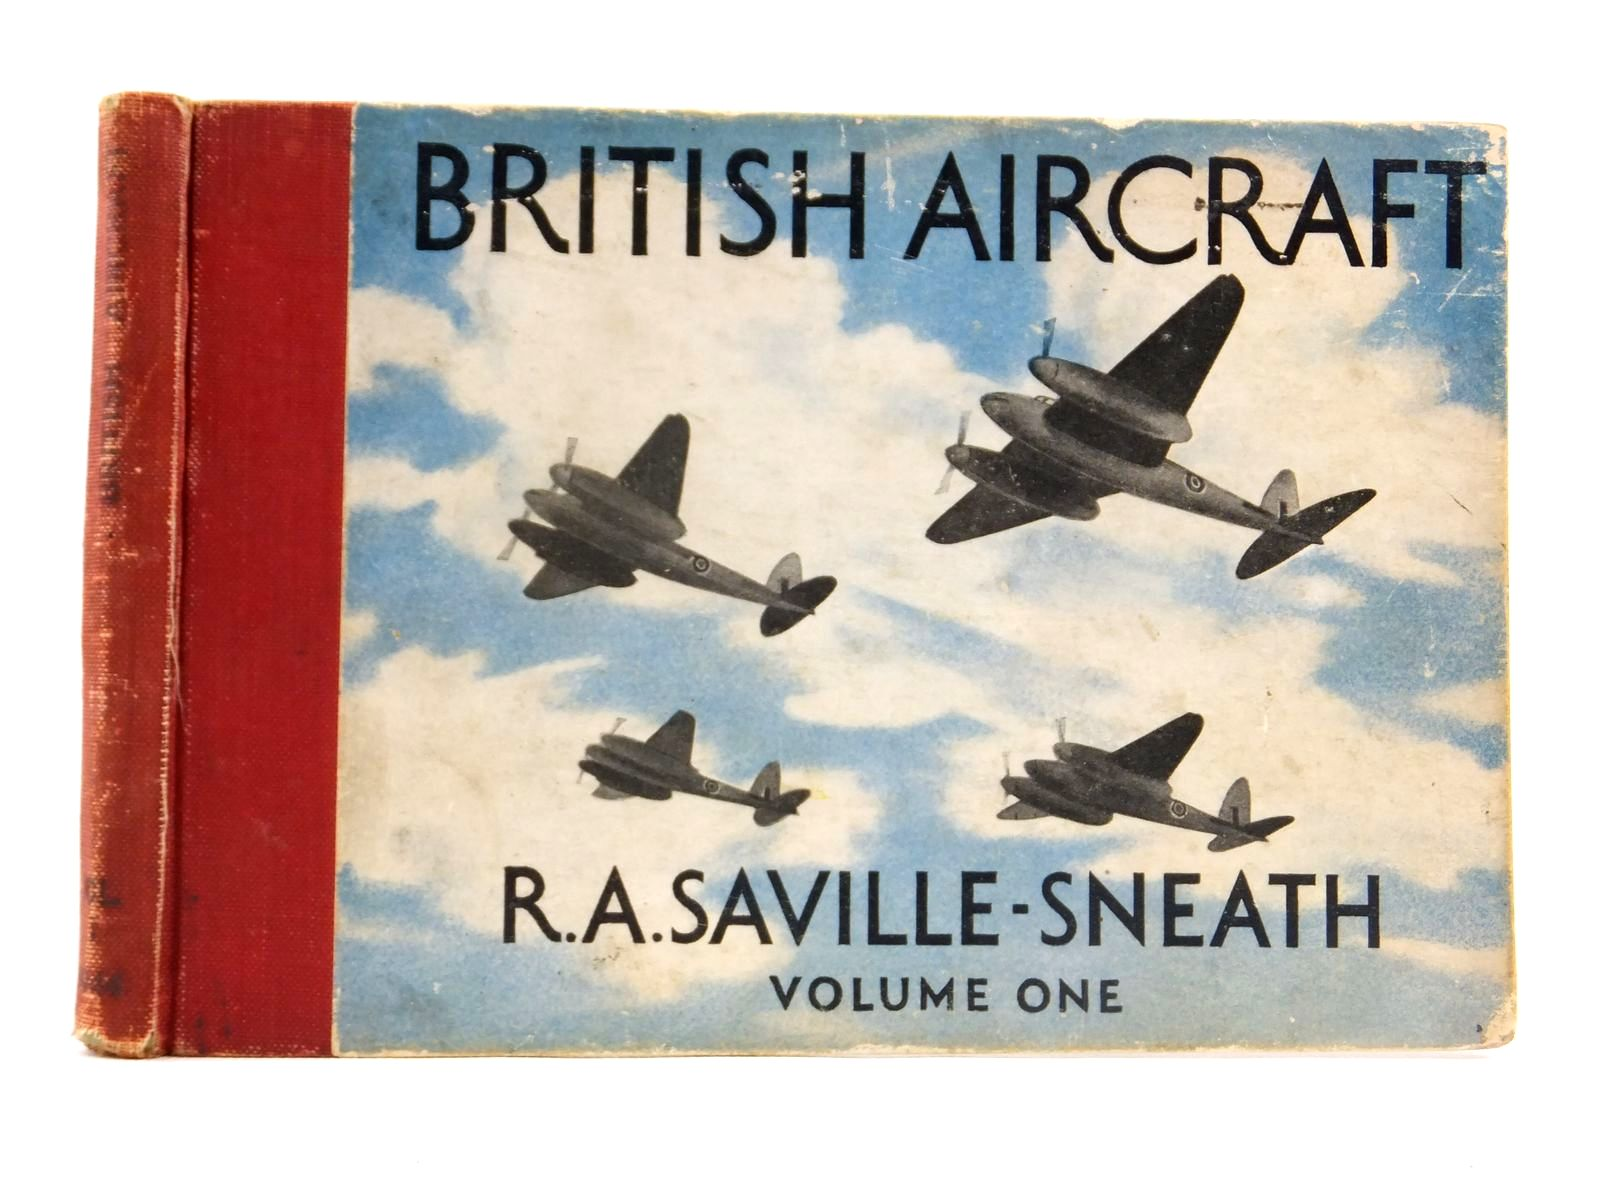 Photo of BRITISH AIRCRAFT VOLUME ONE written by Saville-Sneath, R.A. published by Penguin (STOCK CODE: 1608591)  for sale by Stella & Rose's Books